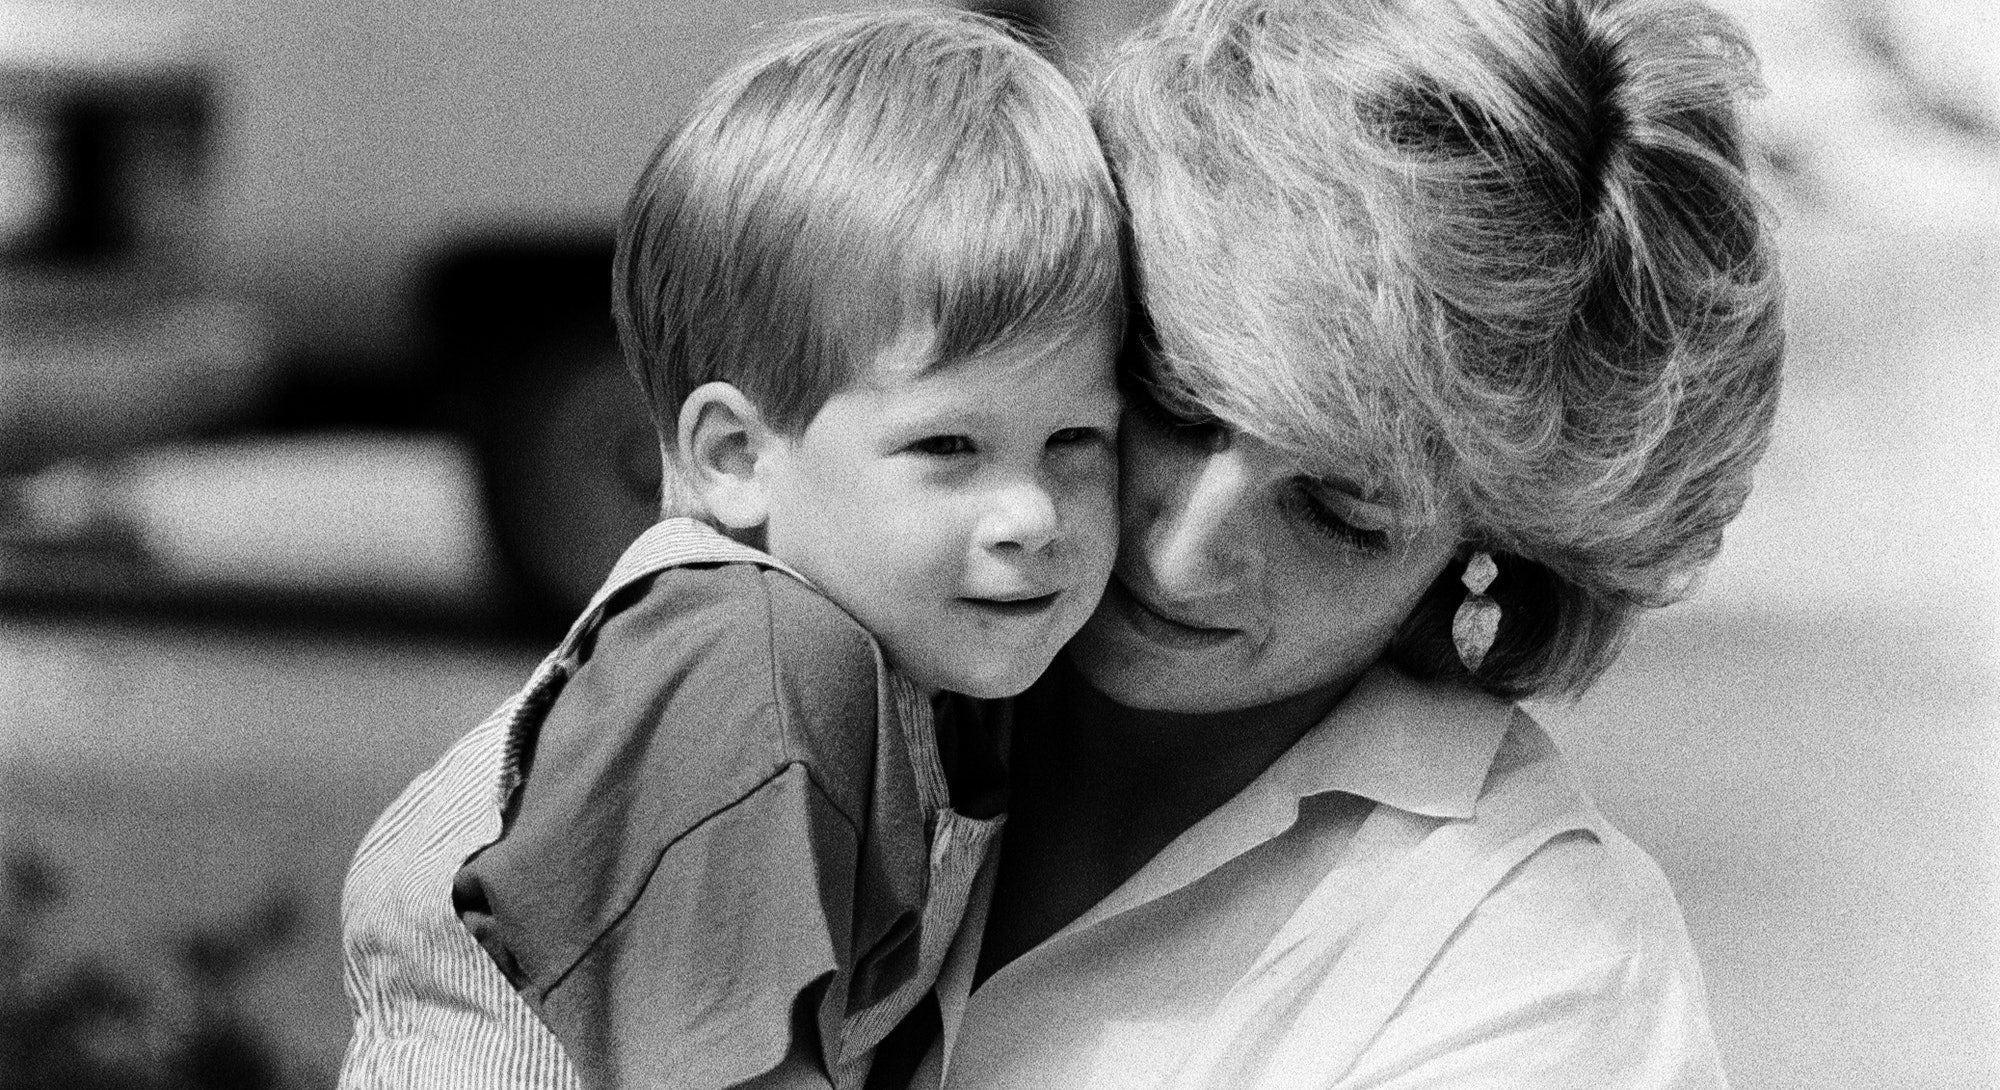 HRH Princess Diana, The Princess of Wales holds her young son Prince Harry on holiday in Majorca, Spain, Picture taken 9th August 1987. (Photo by Mirrorpix via Getty Images)